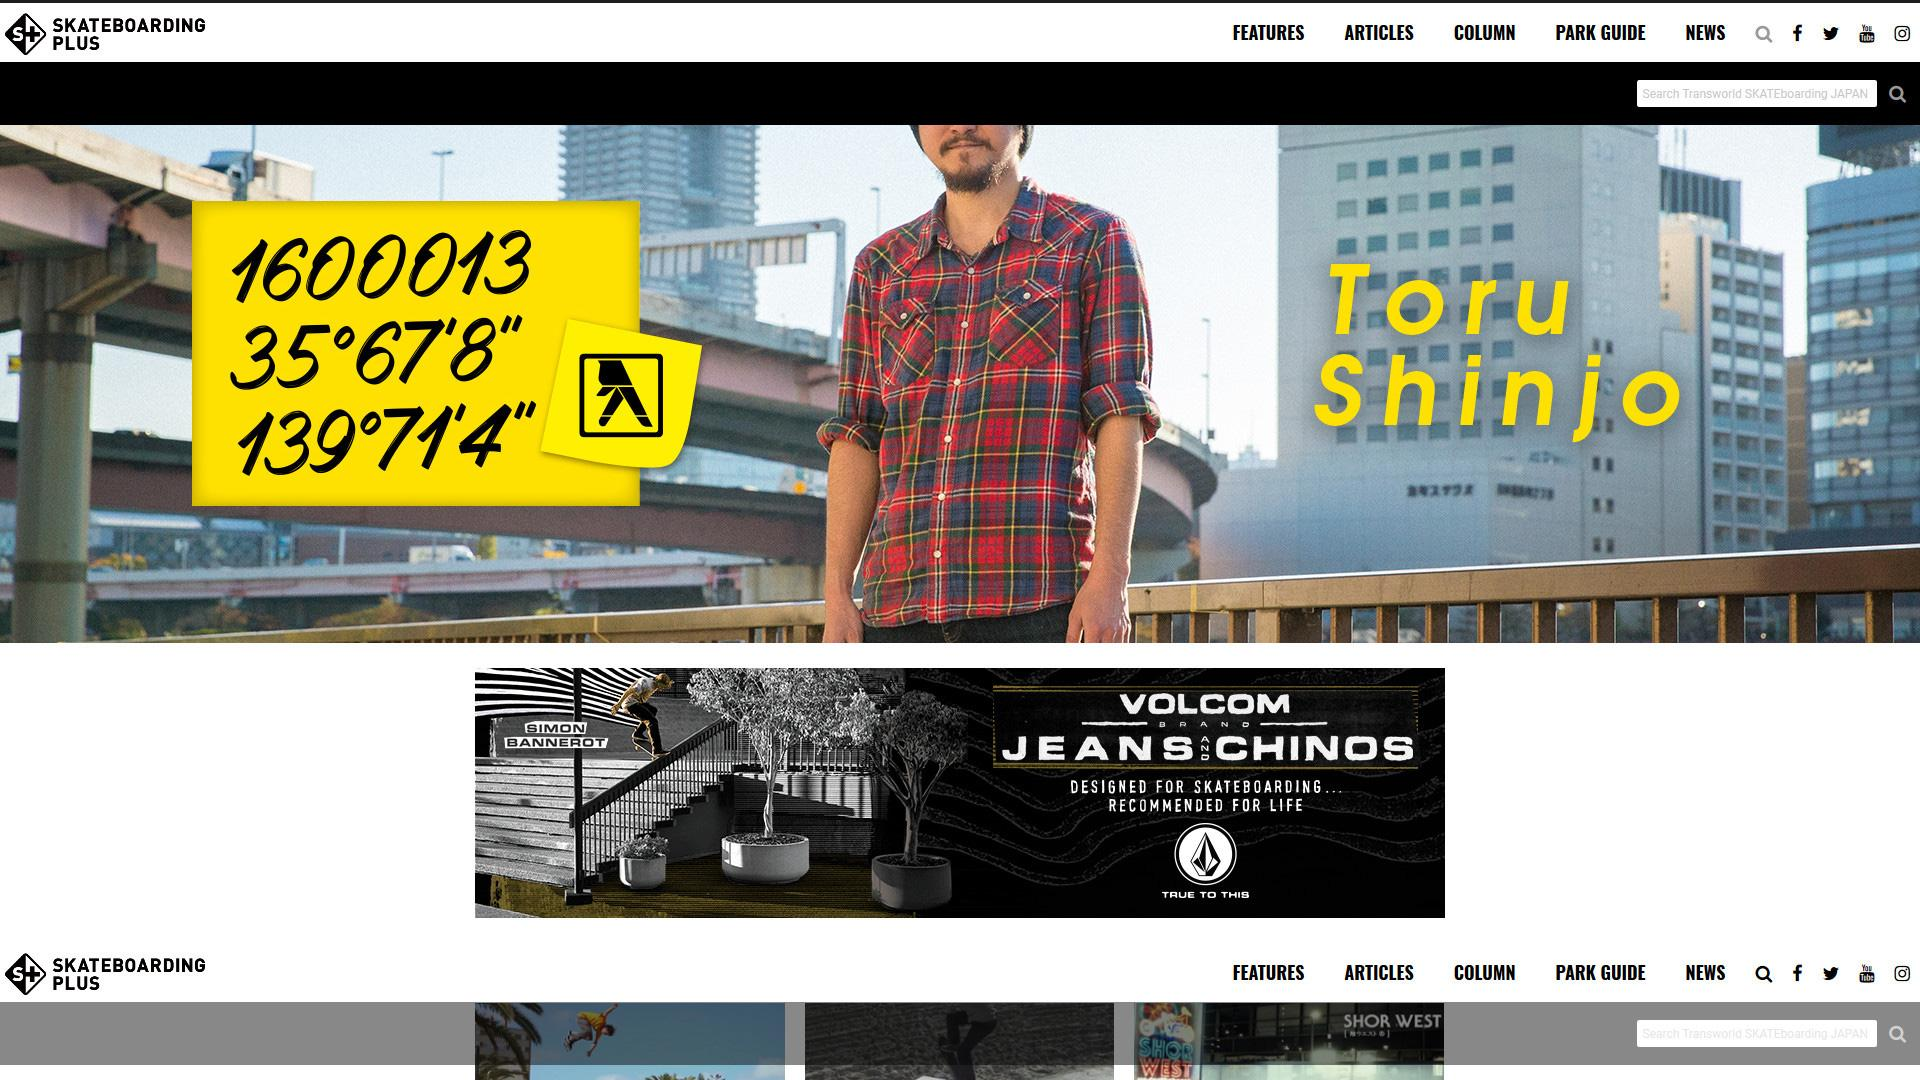 SKATEBOARDING PLUS Website Renewal